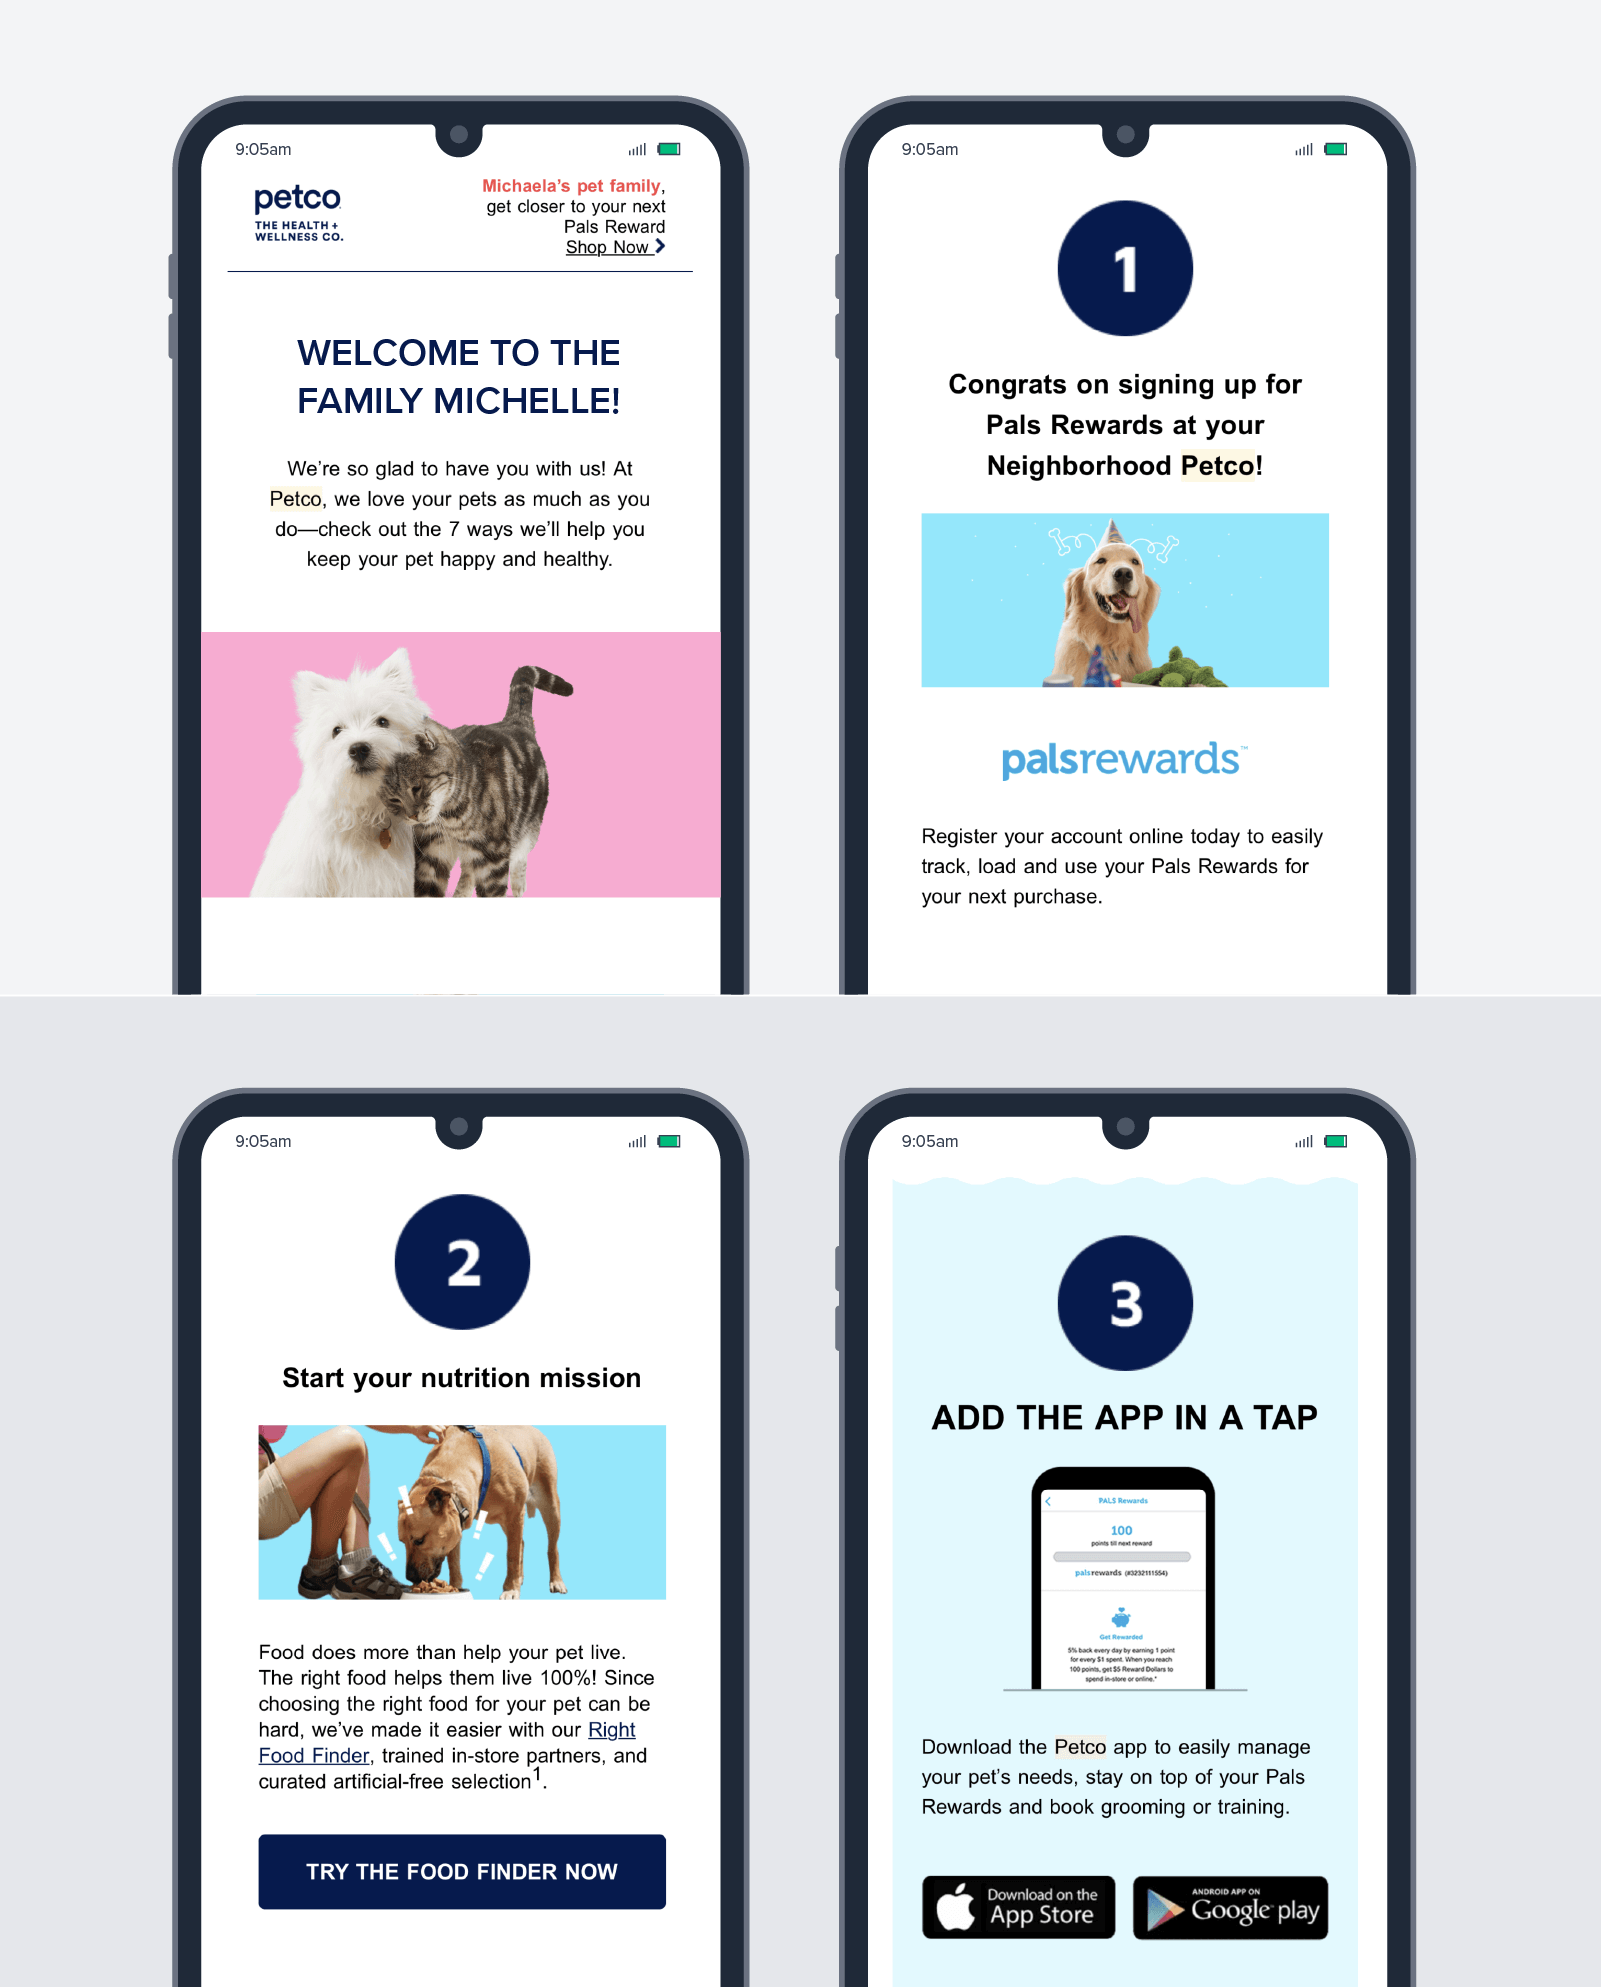 Petco's welcome email is tailored, easy to scan, and has a clear and relevant mid- and end-CTA.